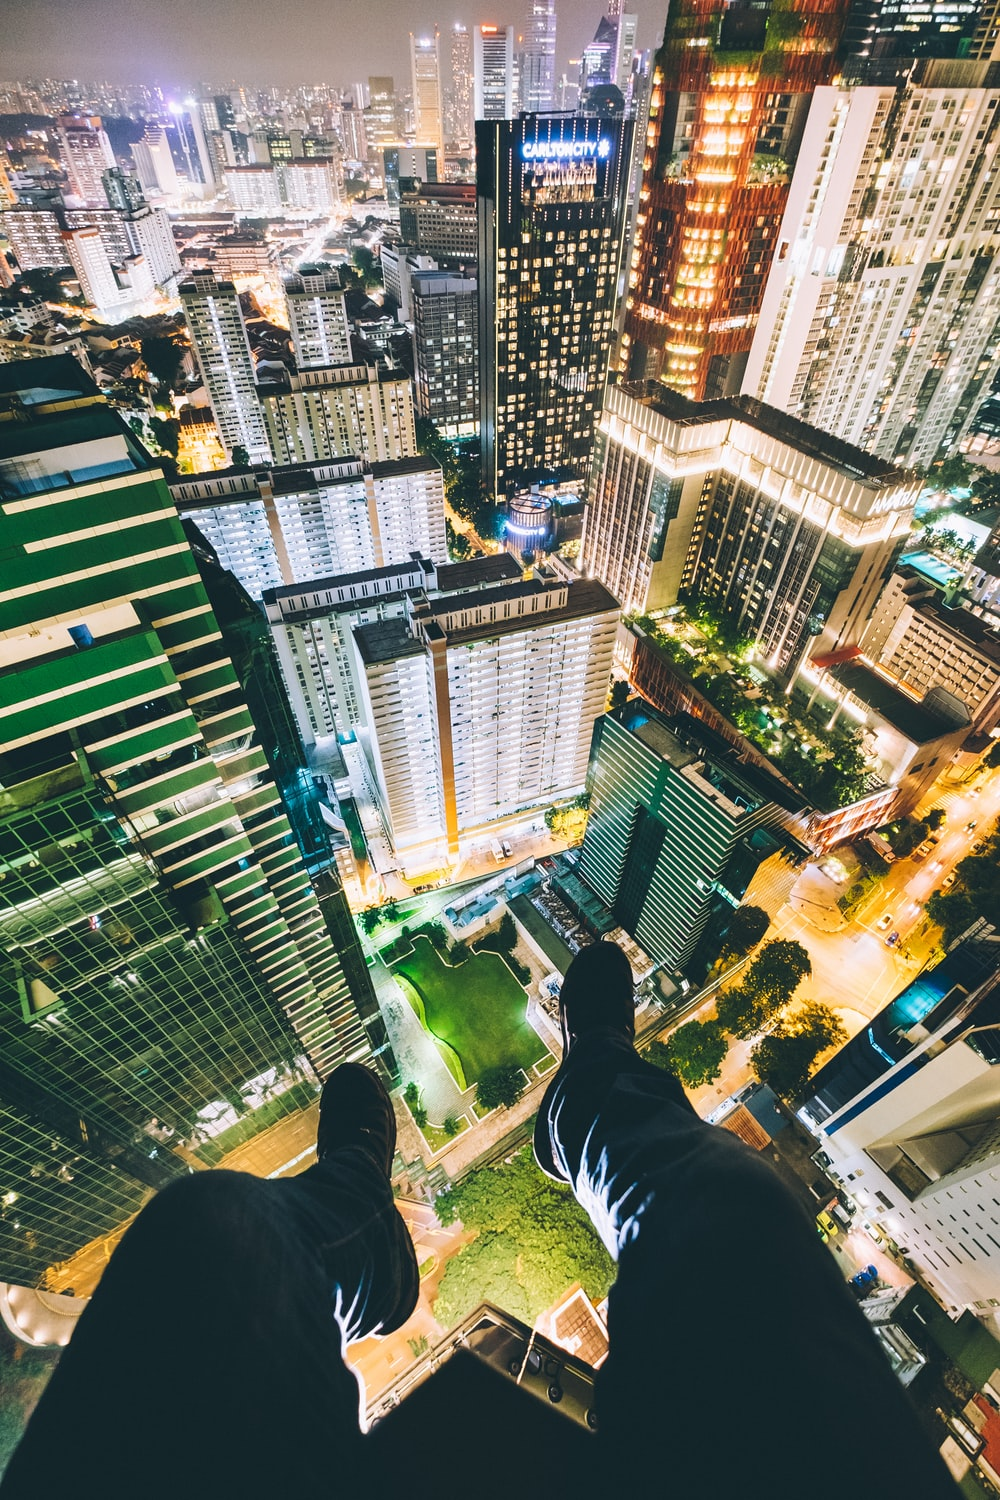 man sitting on top of high-rise buildings